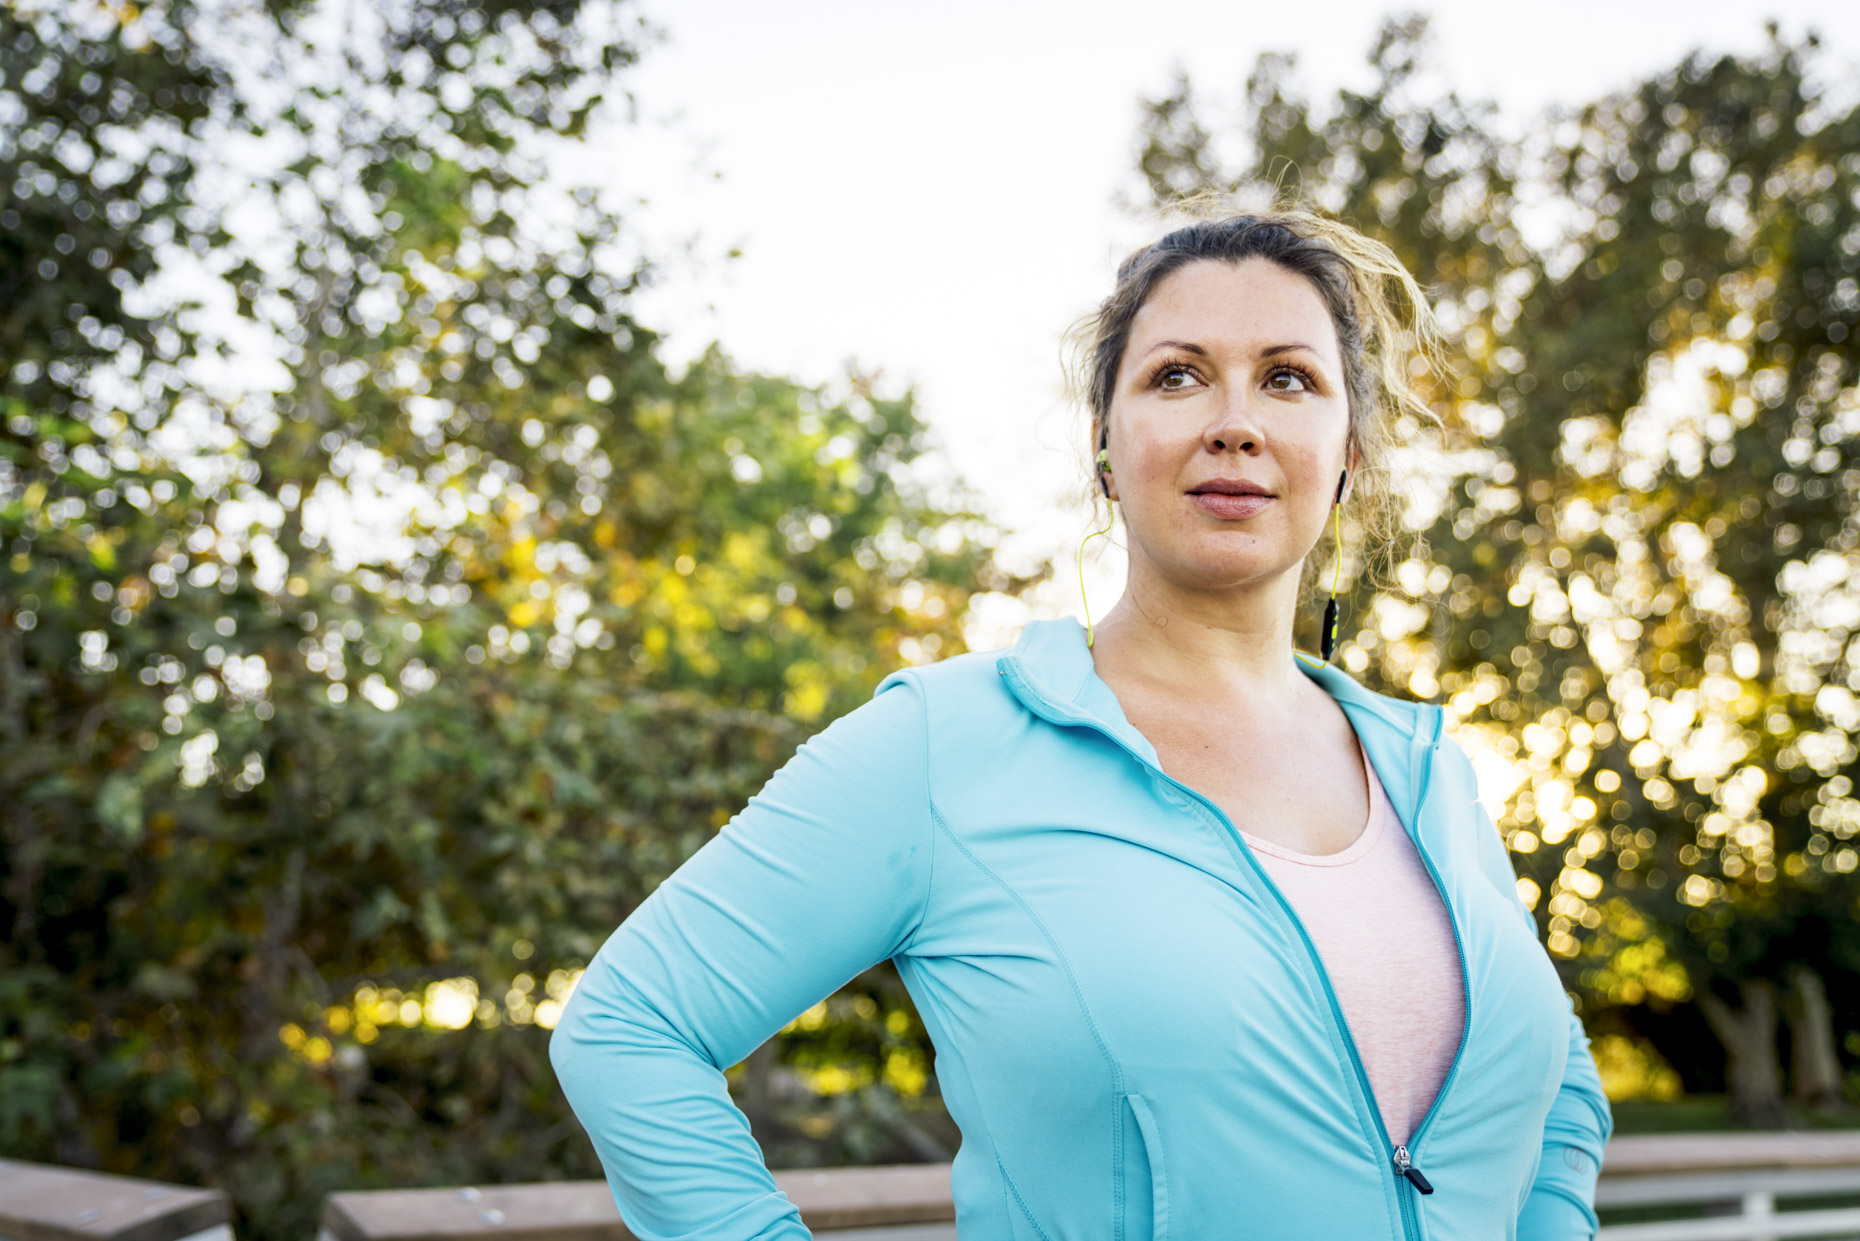 Plus-sized woman in fitness attire looking off in to distance